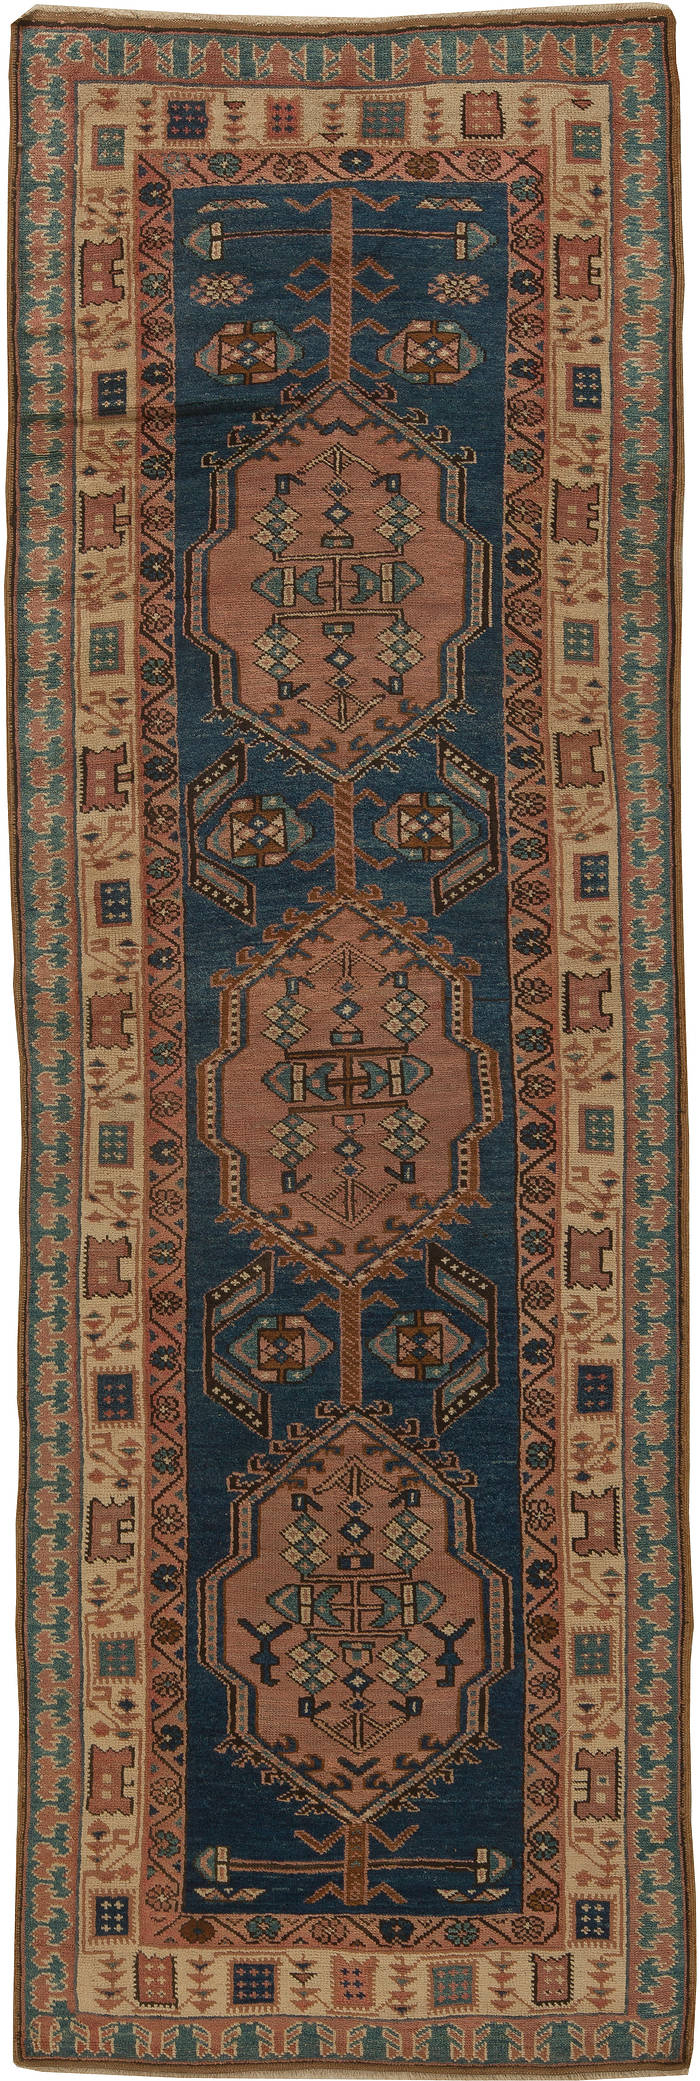 sarab rugs carpets for sale antique oriental persian rug nyc. Black Bedroom Furniture Sets. Home Design Ideas